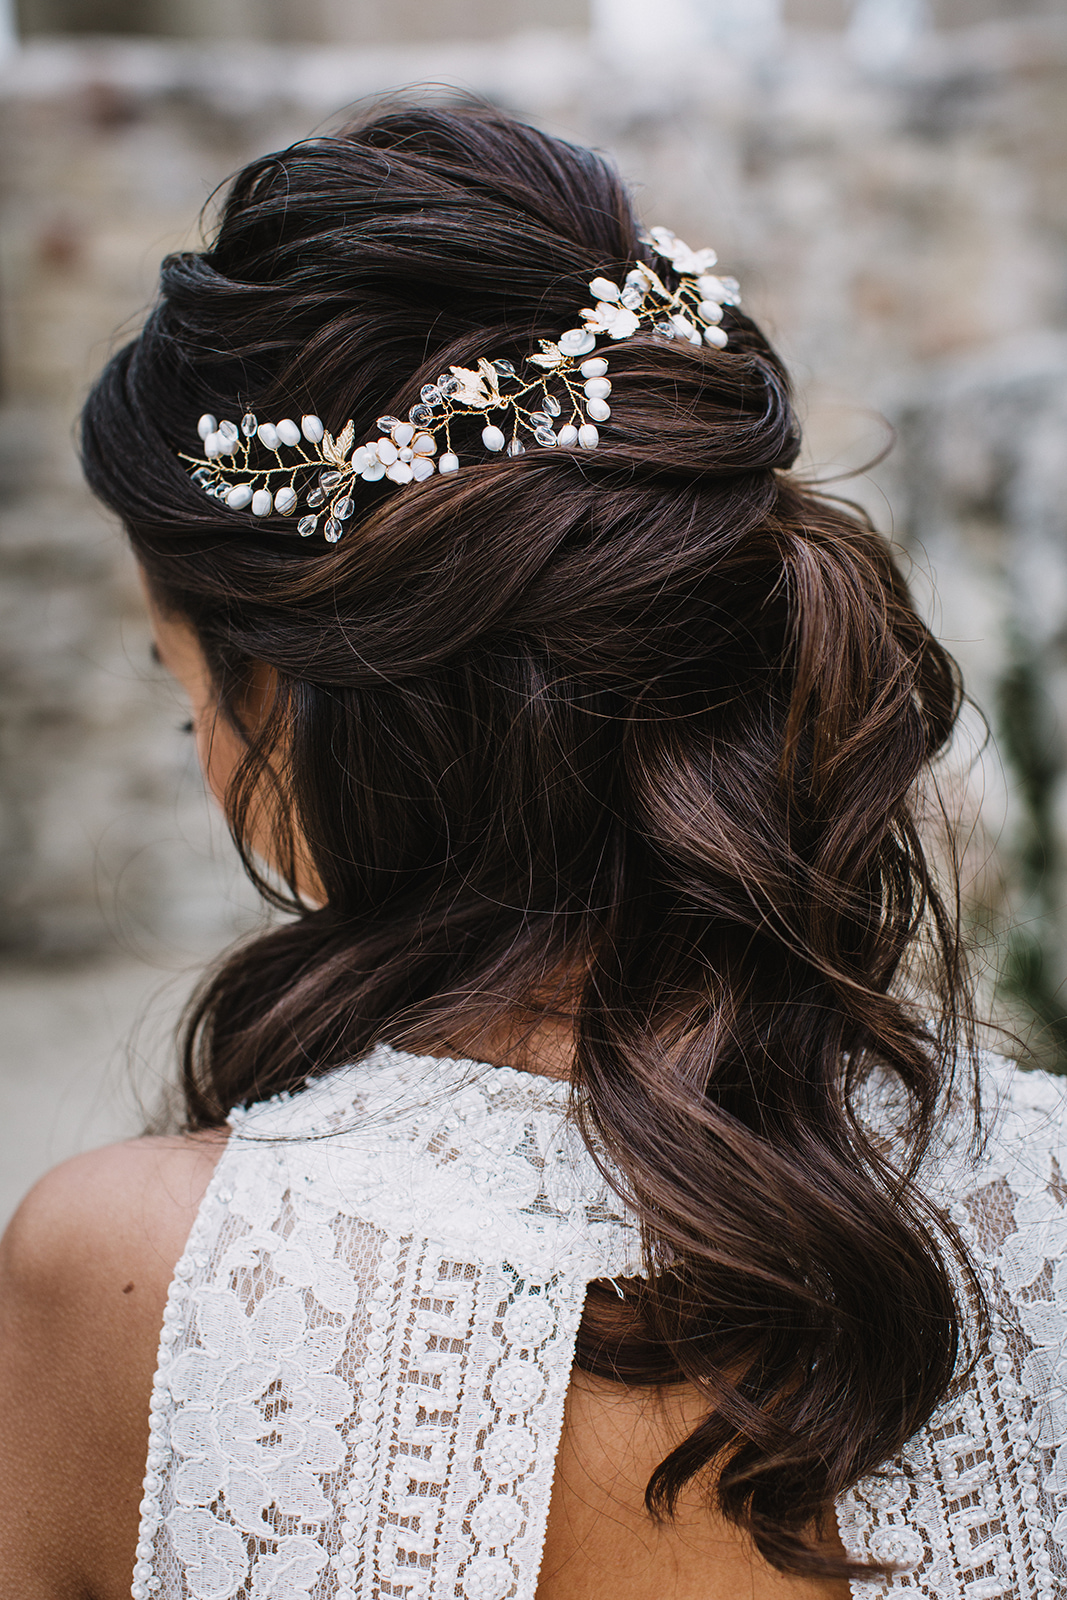 Beaded Wedding Hairpiece - Wedding Hair Ideas